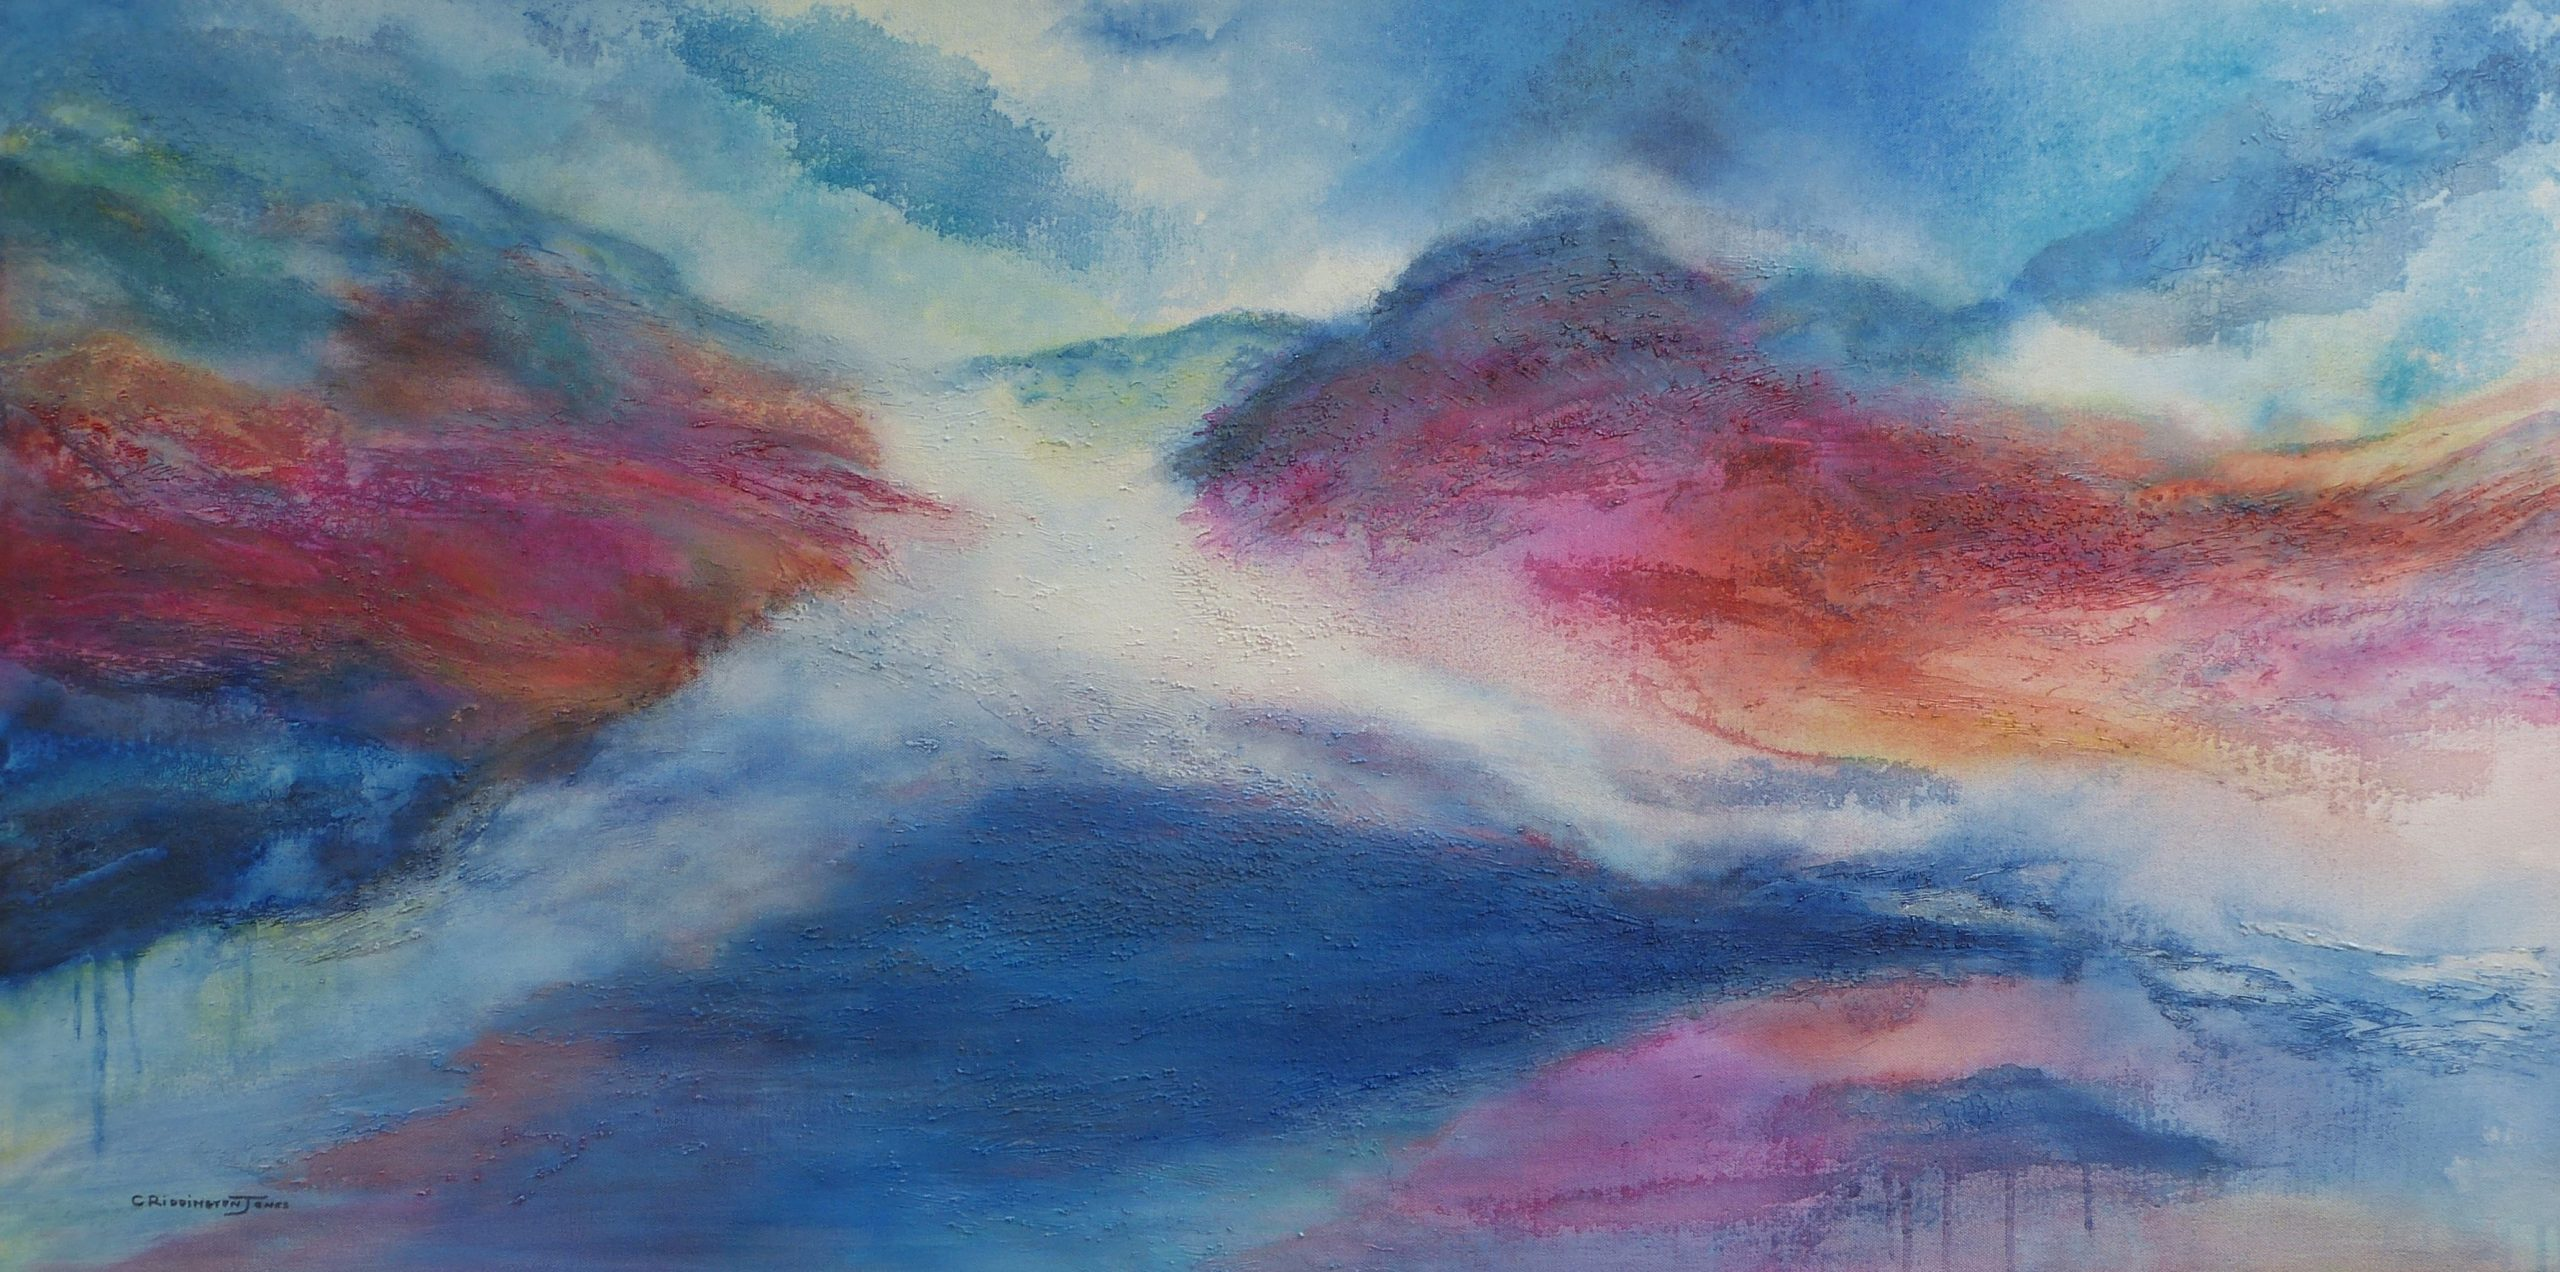 Absract Painting of Mountains and Clouds